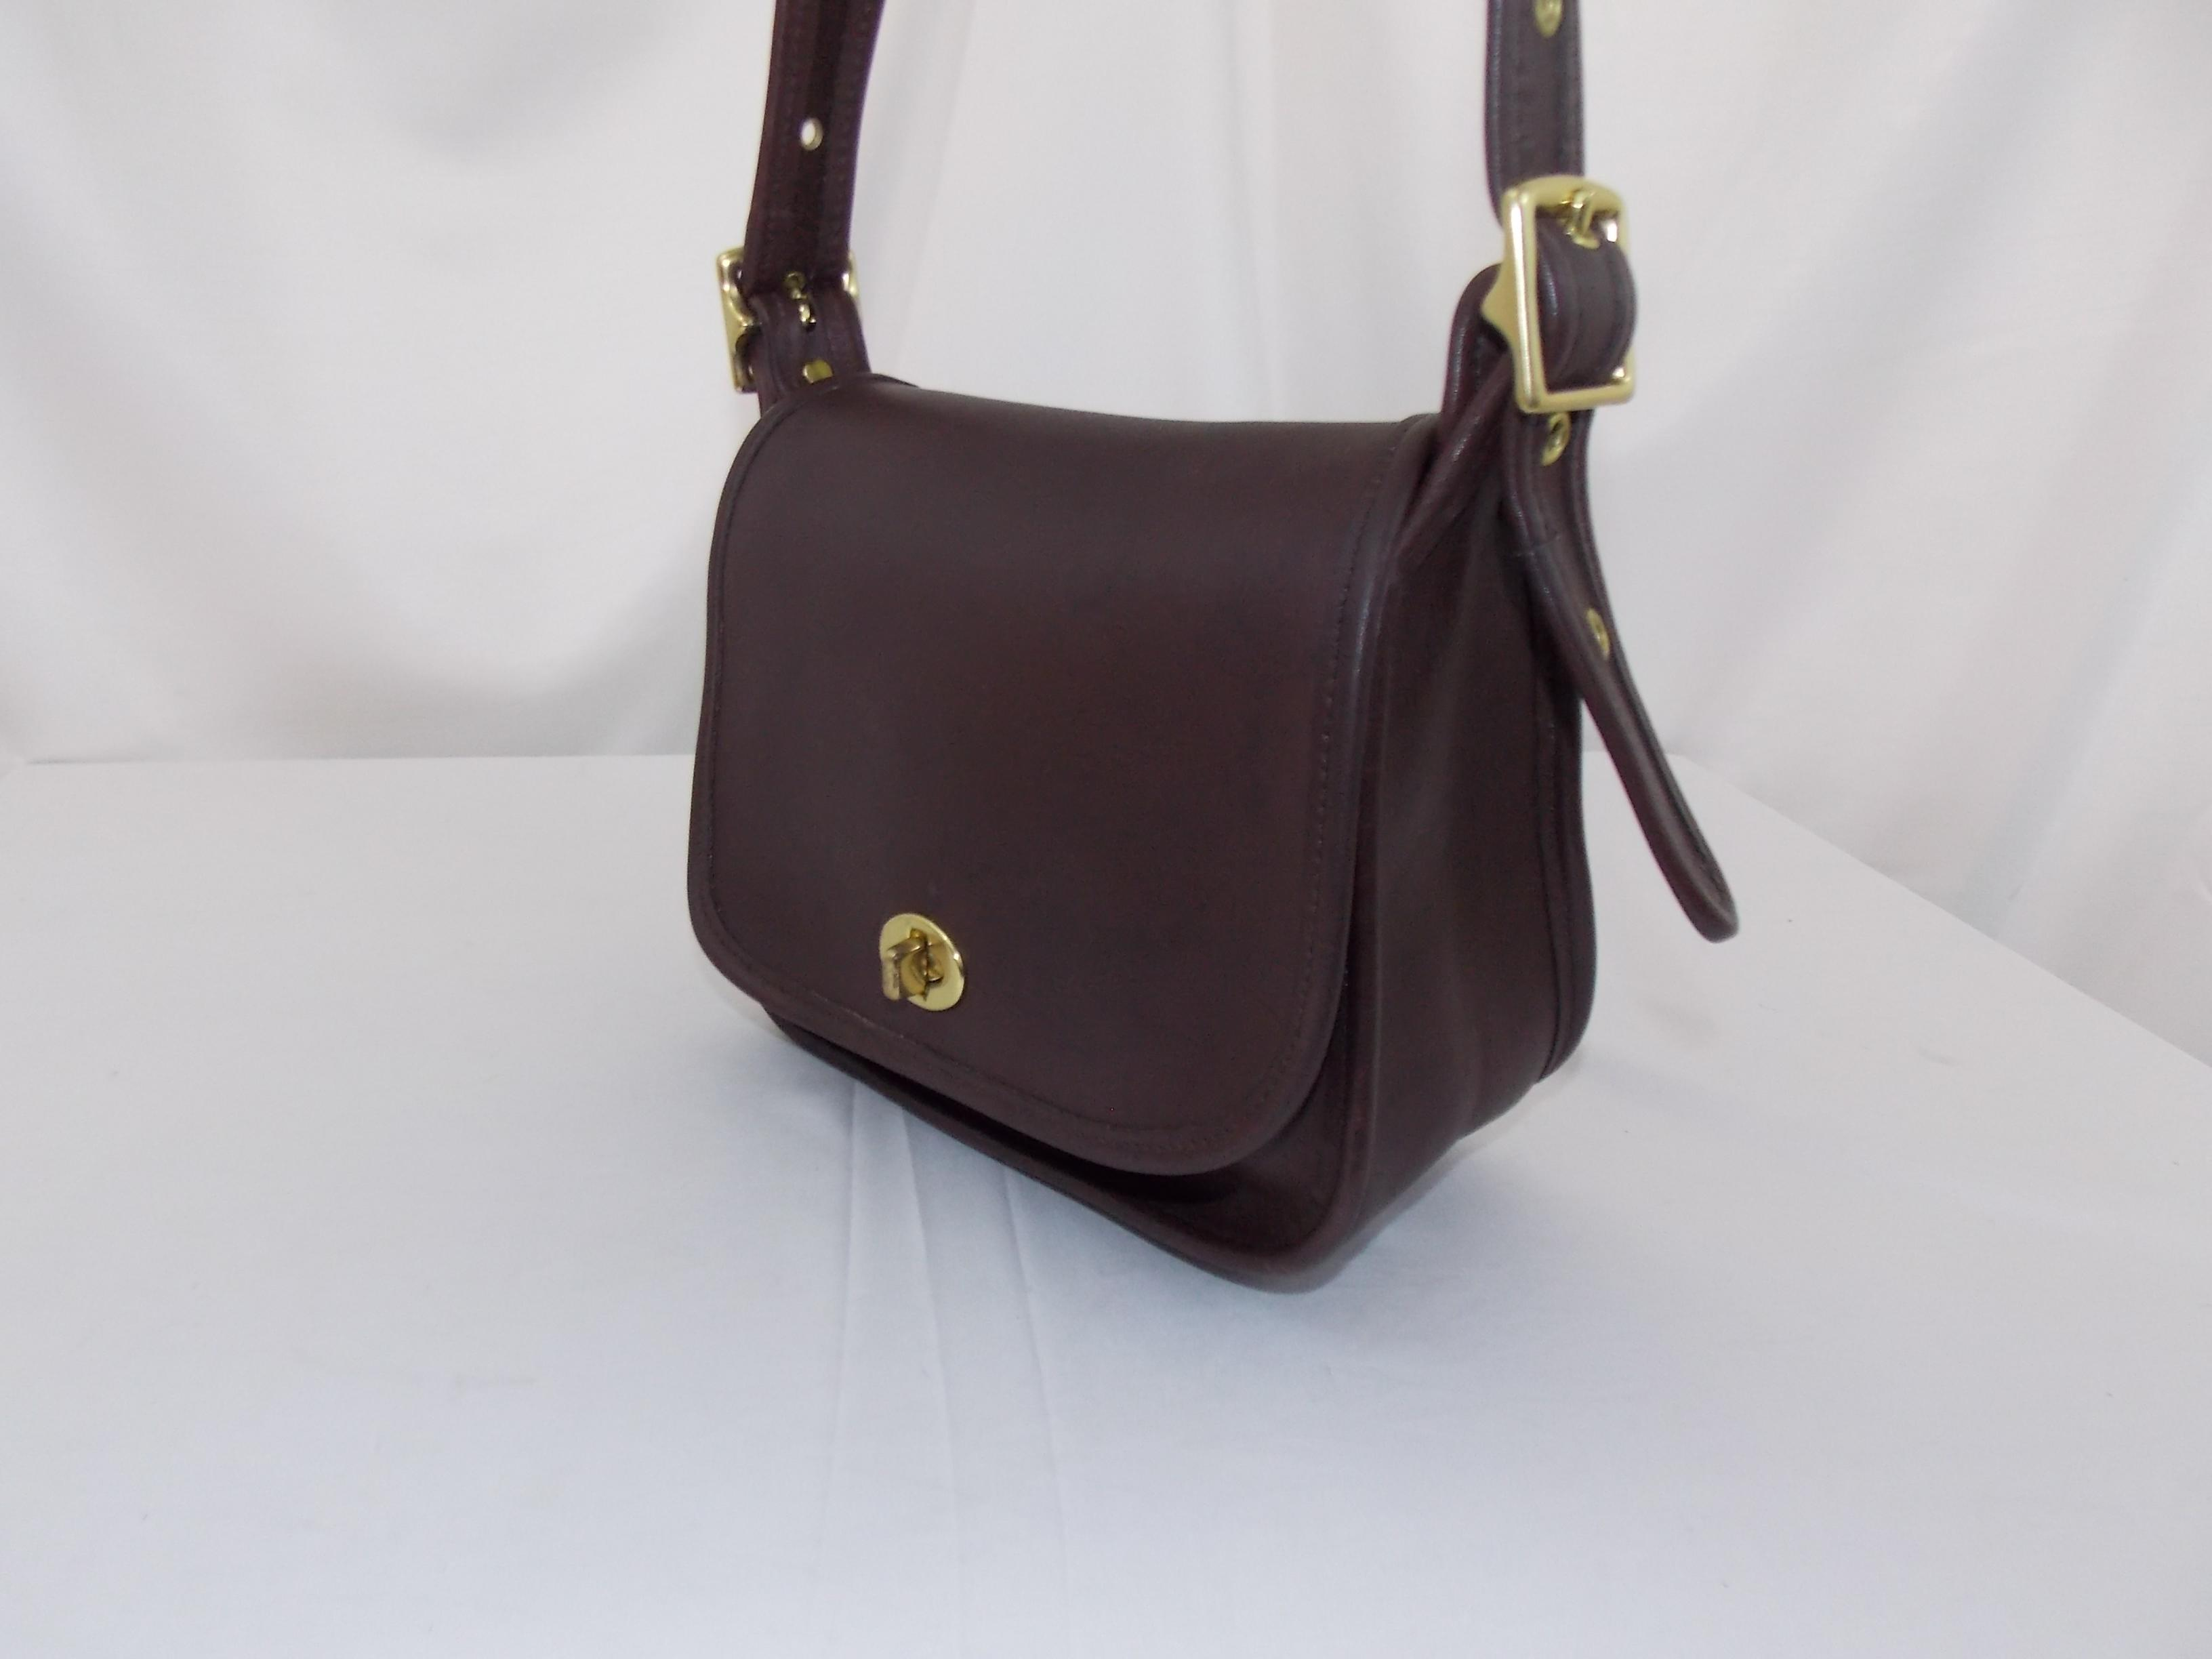 e33797a3d50d ... czech coach legacy trail bagk7d 9965brassmahogany new never used  condition rare mahogany leather shoulder bag tradesy